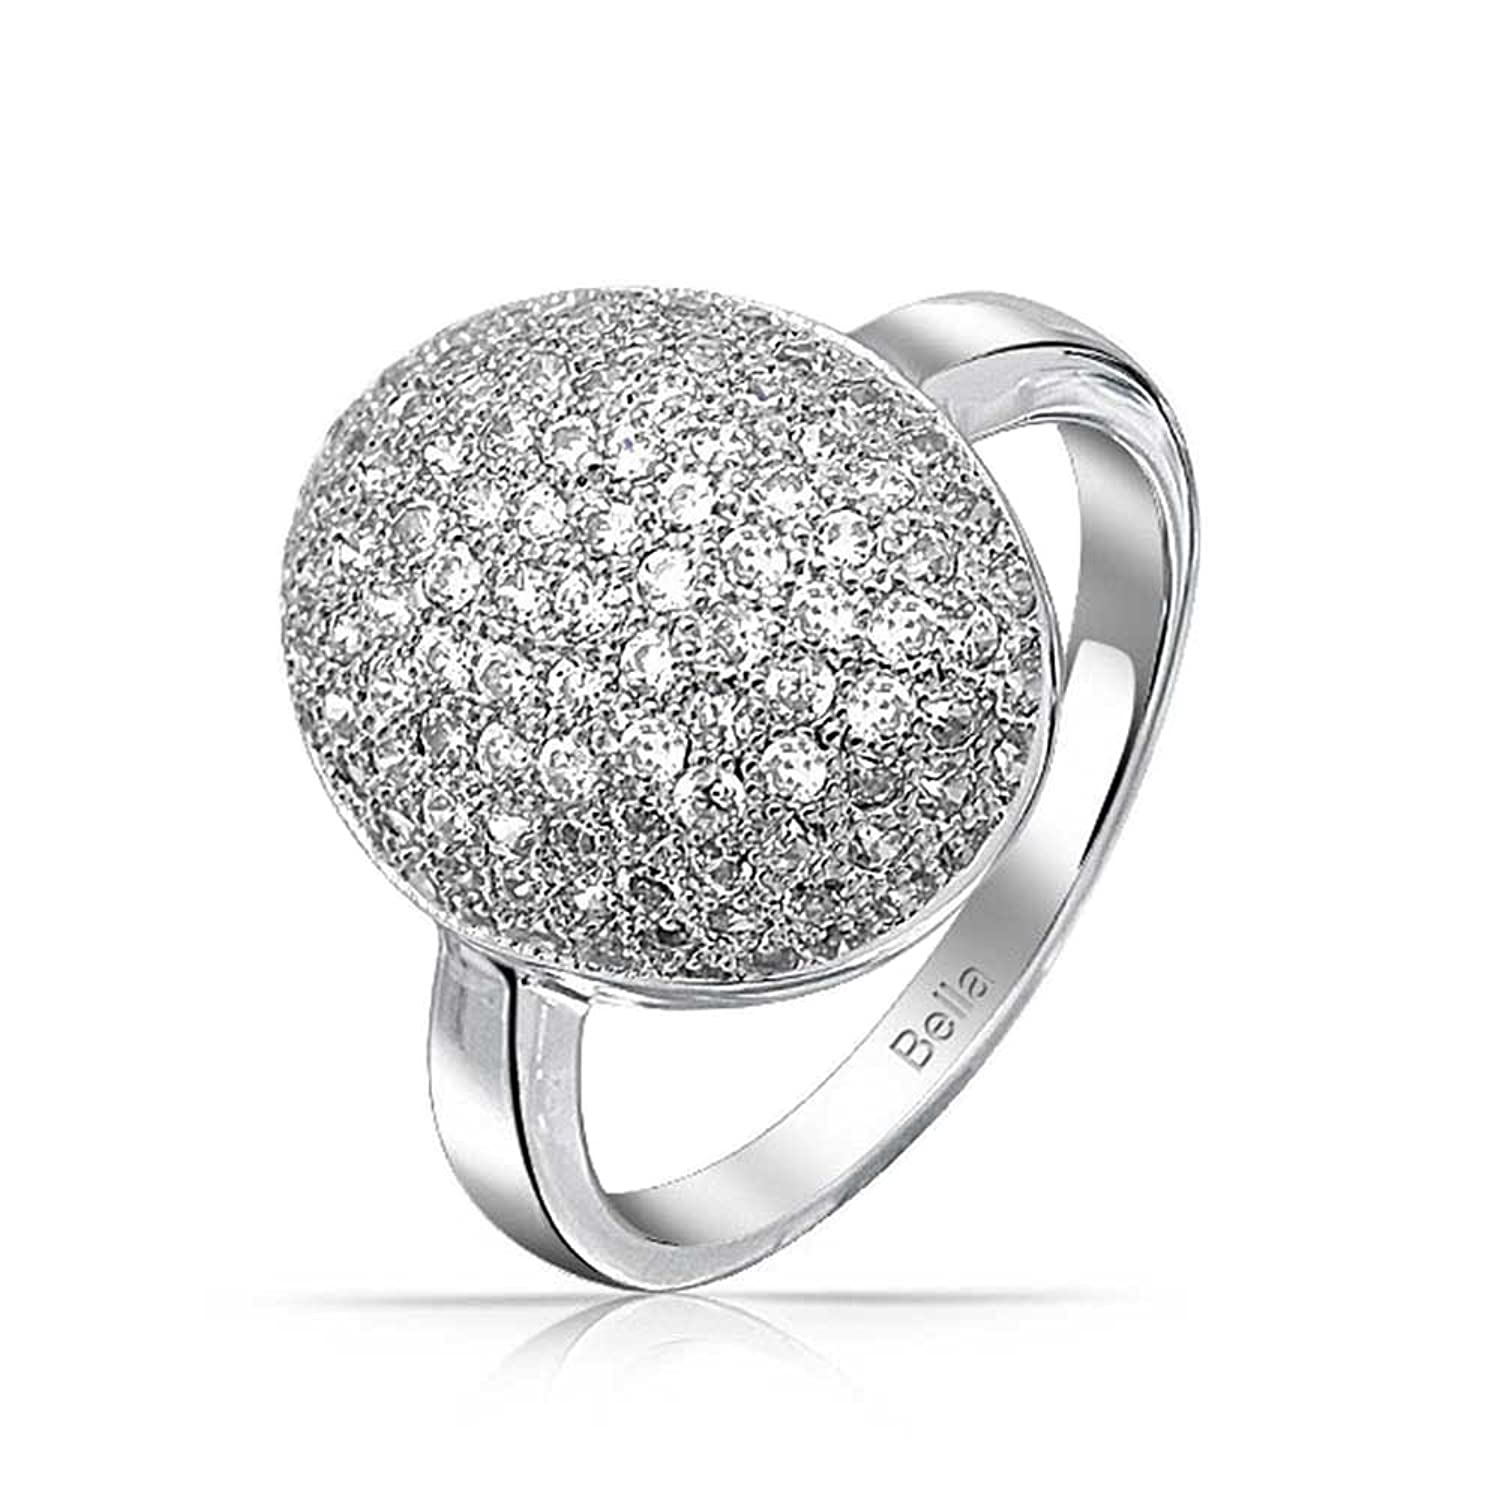 amazoncom bling jewelry pave oval cz sparkle engagement ring rhodium plated brass bella s engagement ring jewelry - Twilight Wedding Ring